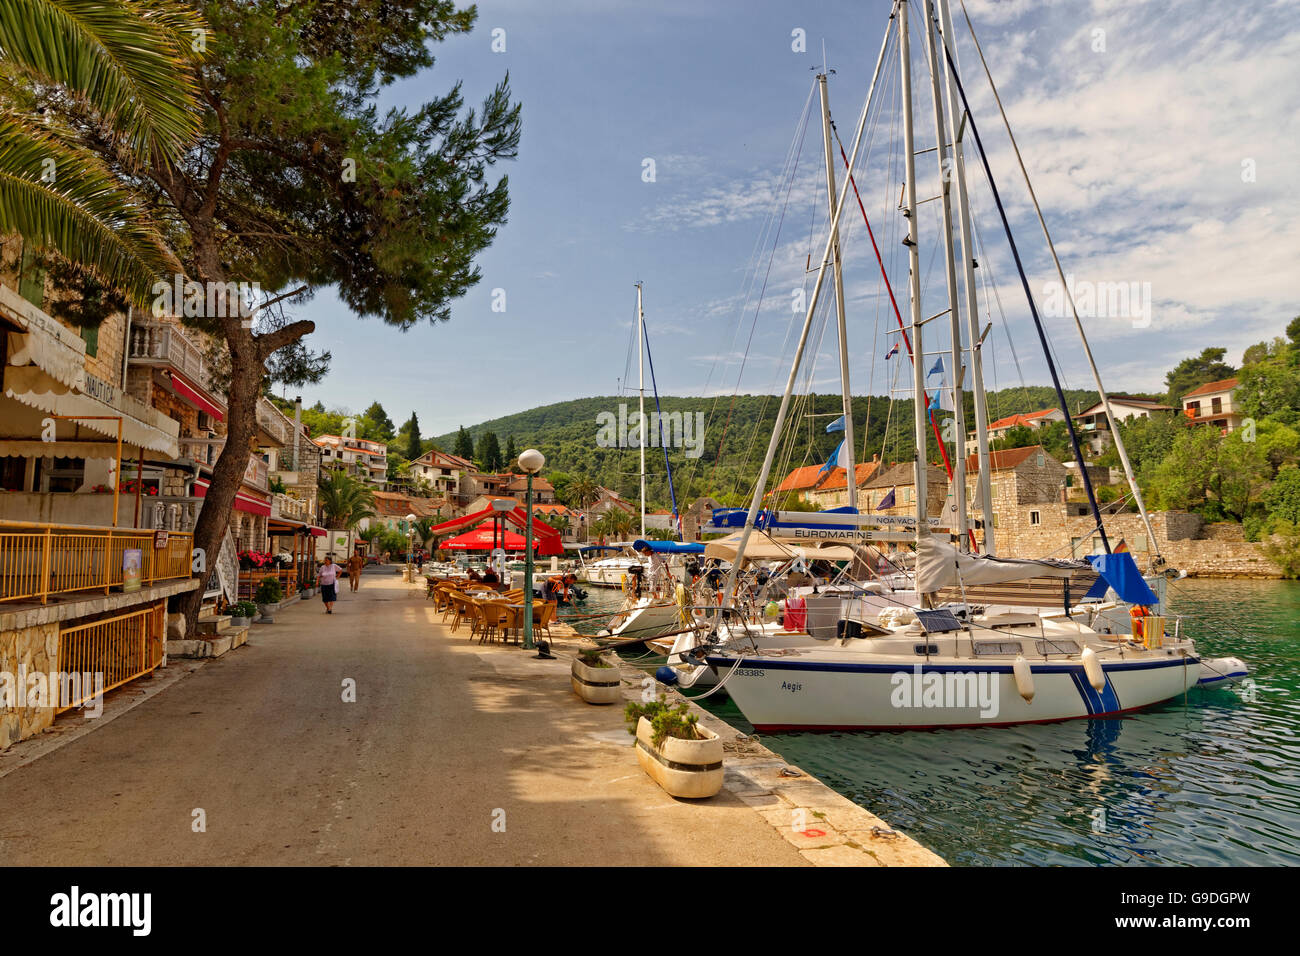 Boats berthed at the village quay of Stomorska on the island of Solta in Croatia. - Stock Image